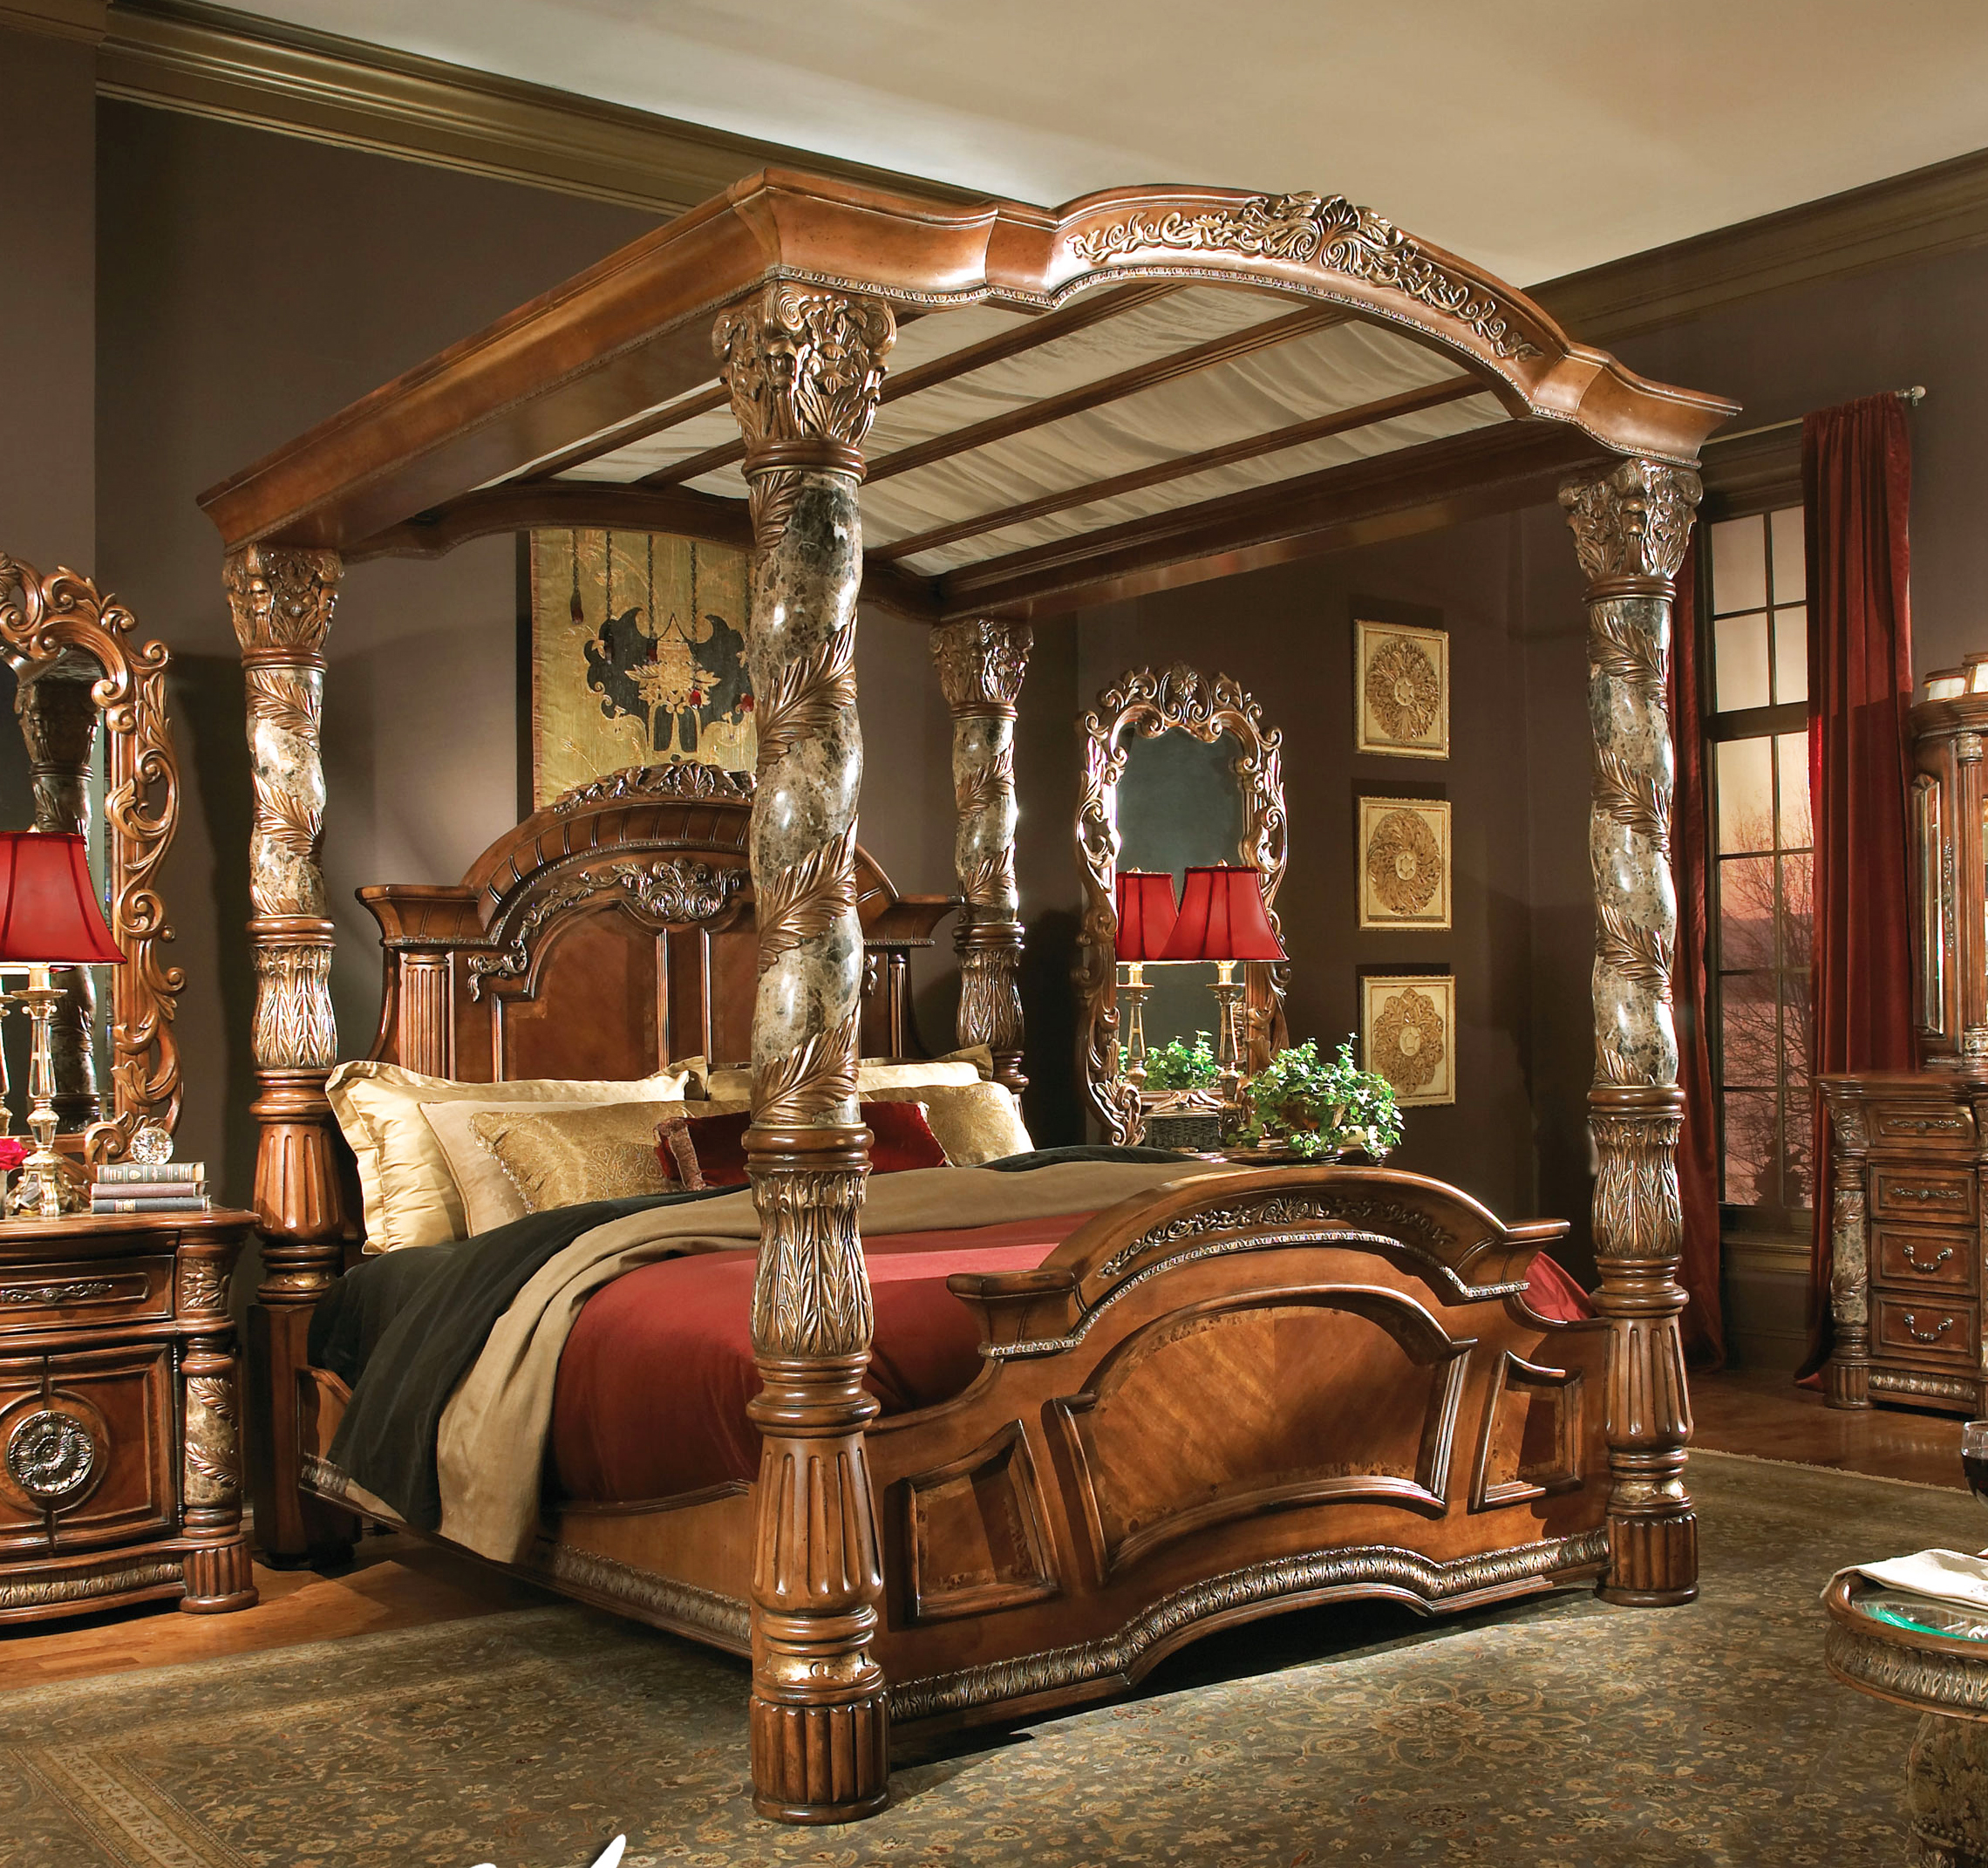 mesmerizing king size canopy bed with red color